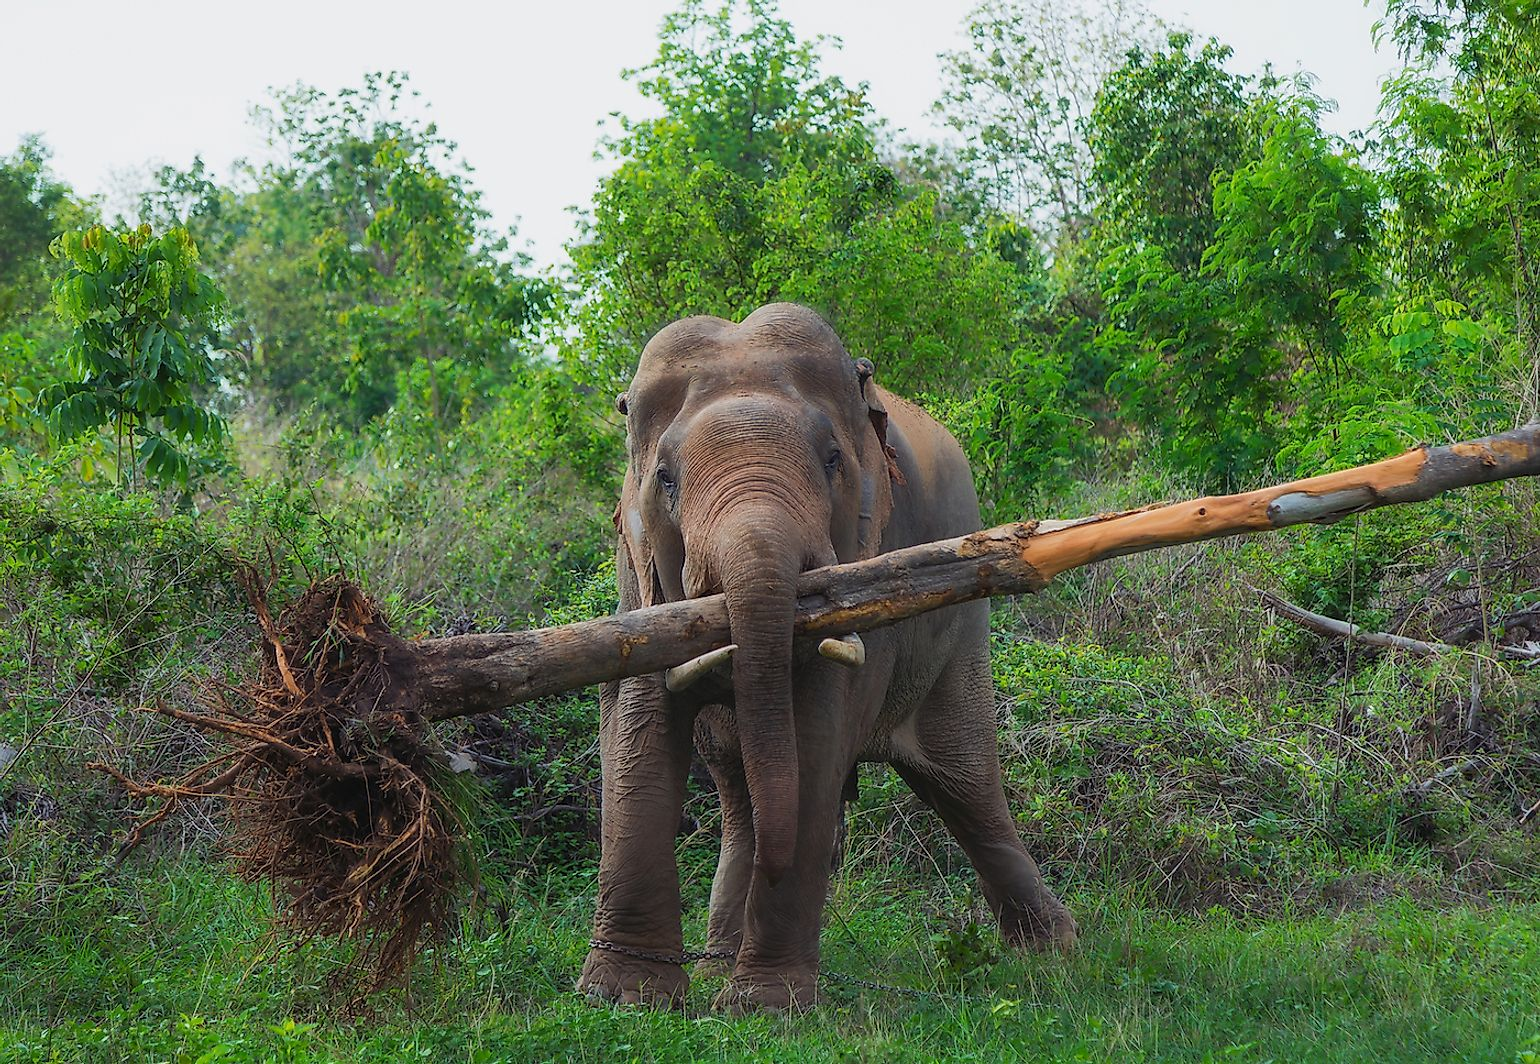 An African elephant with an uprooted tree. Image credit: MossStudio/Shutterstock.com